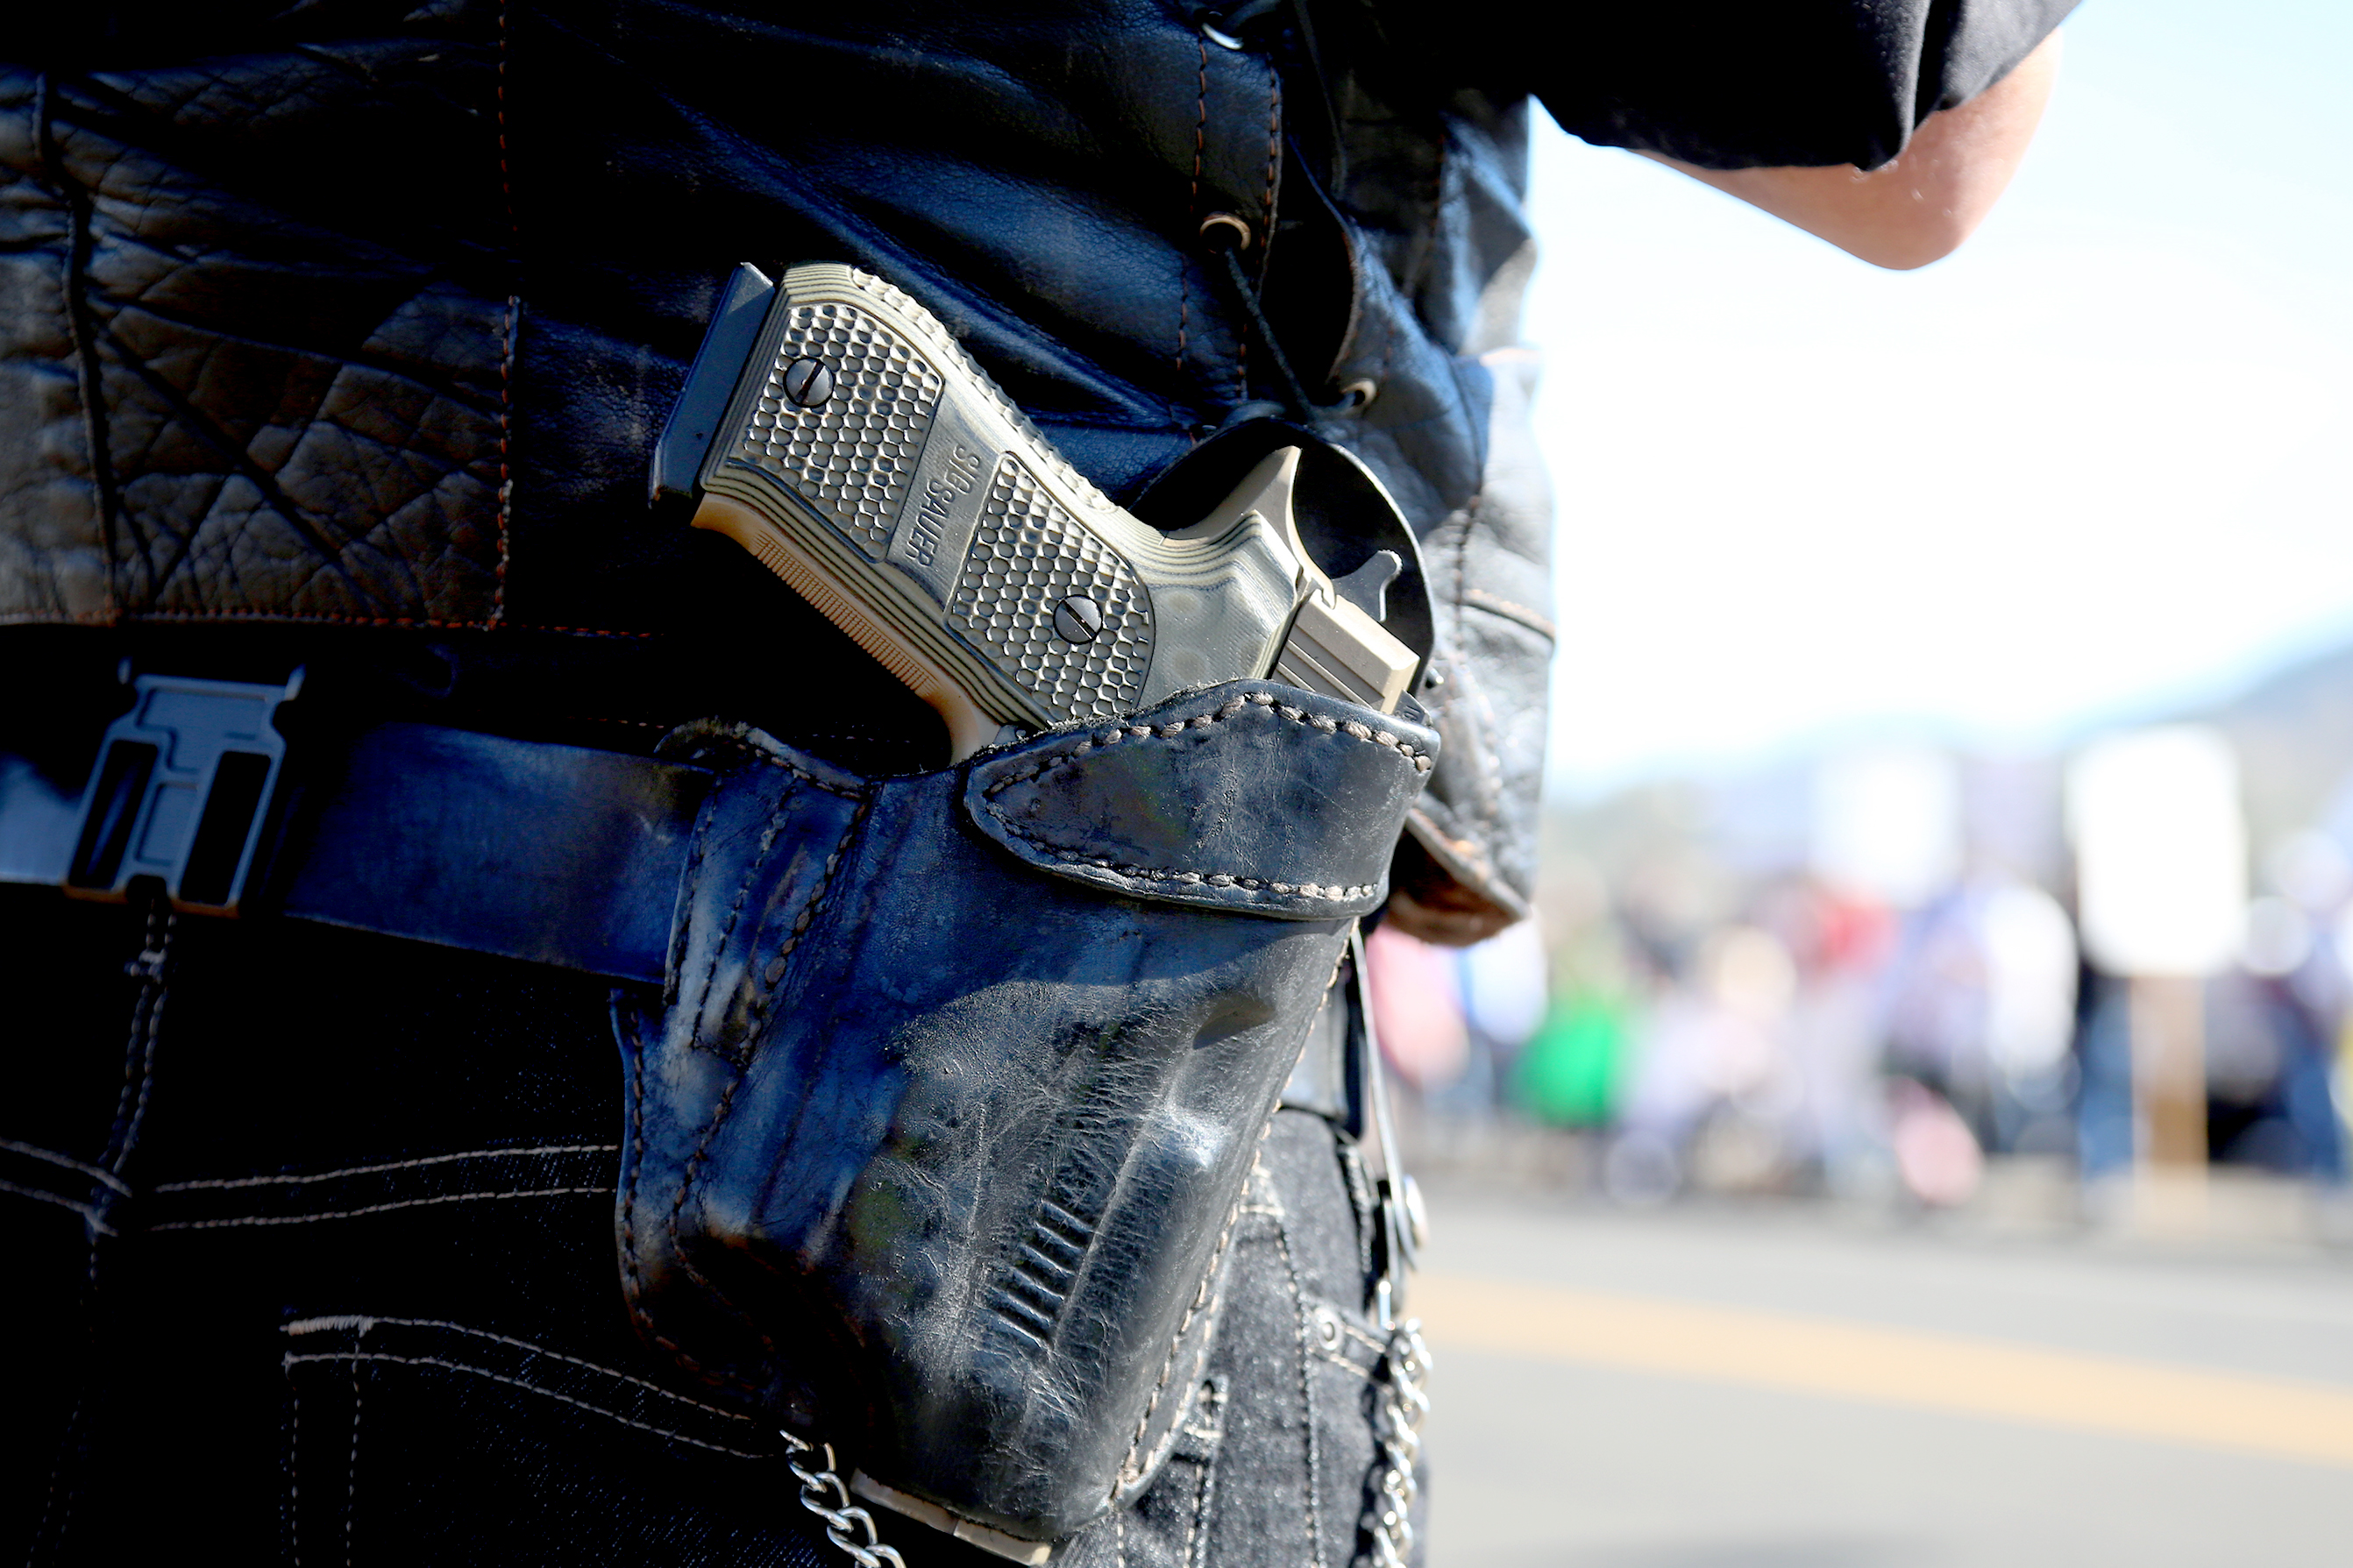 Photo: Gun In Holster